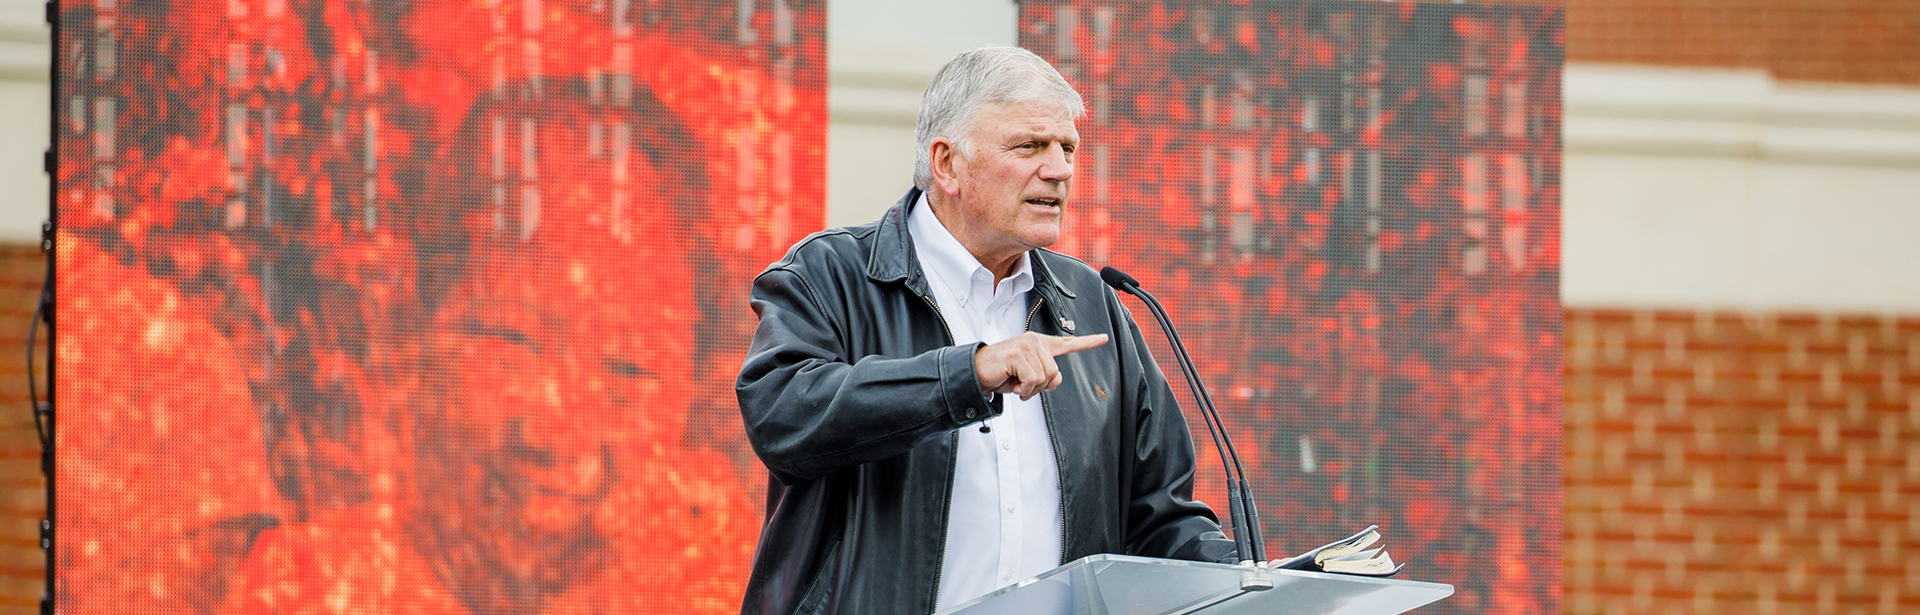 WATCH: Franklin Graham Delivers Convocation Speech at Liberty University